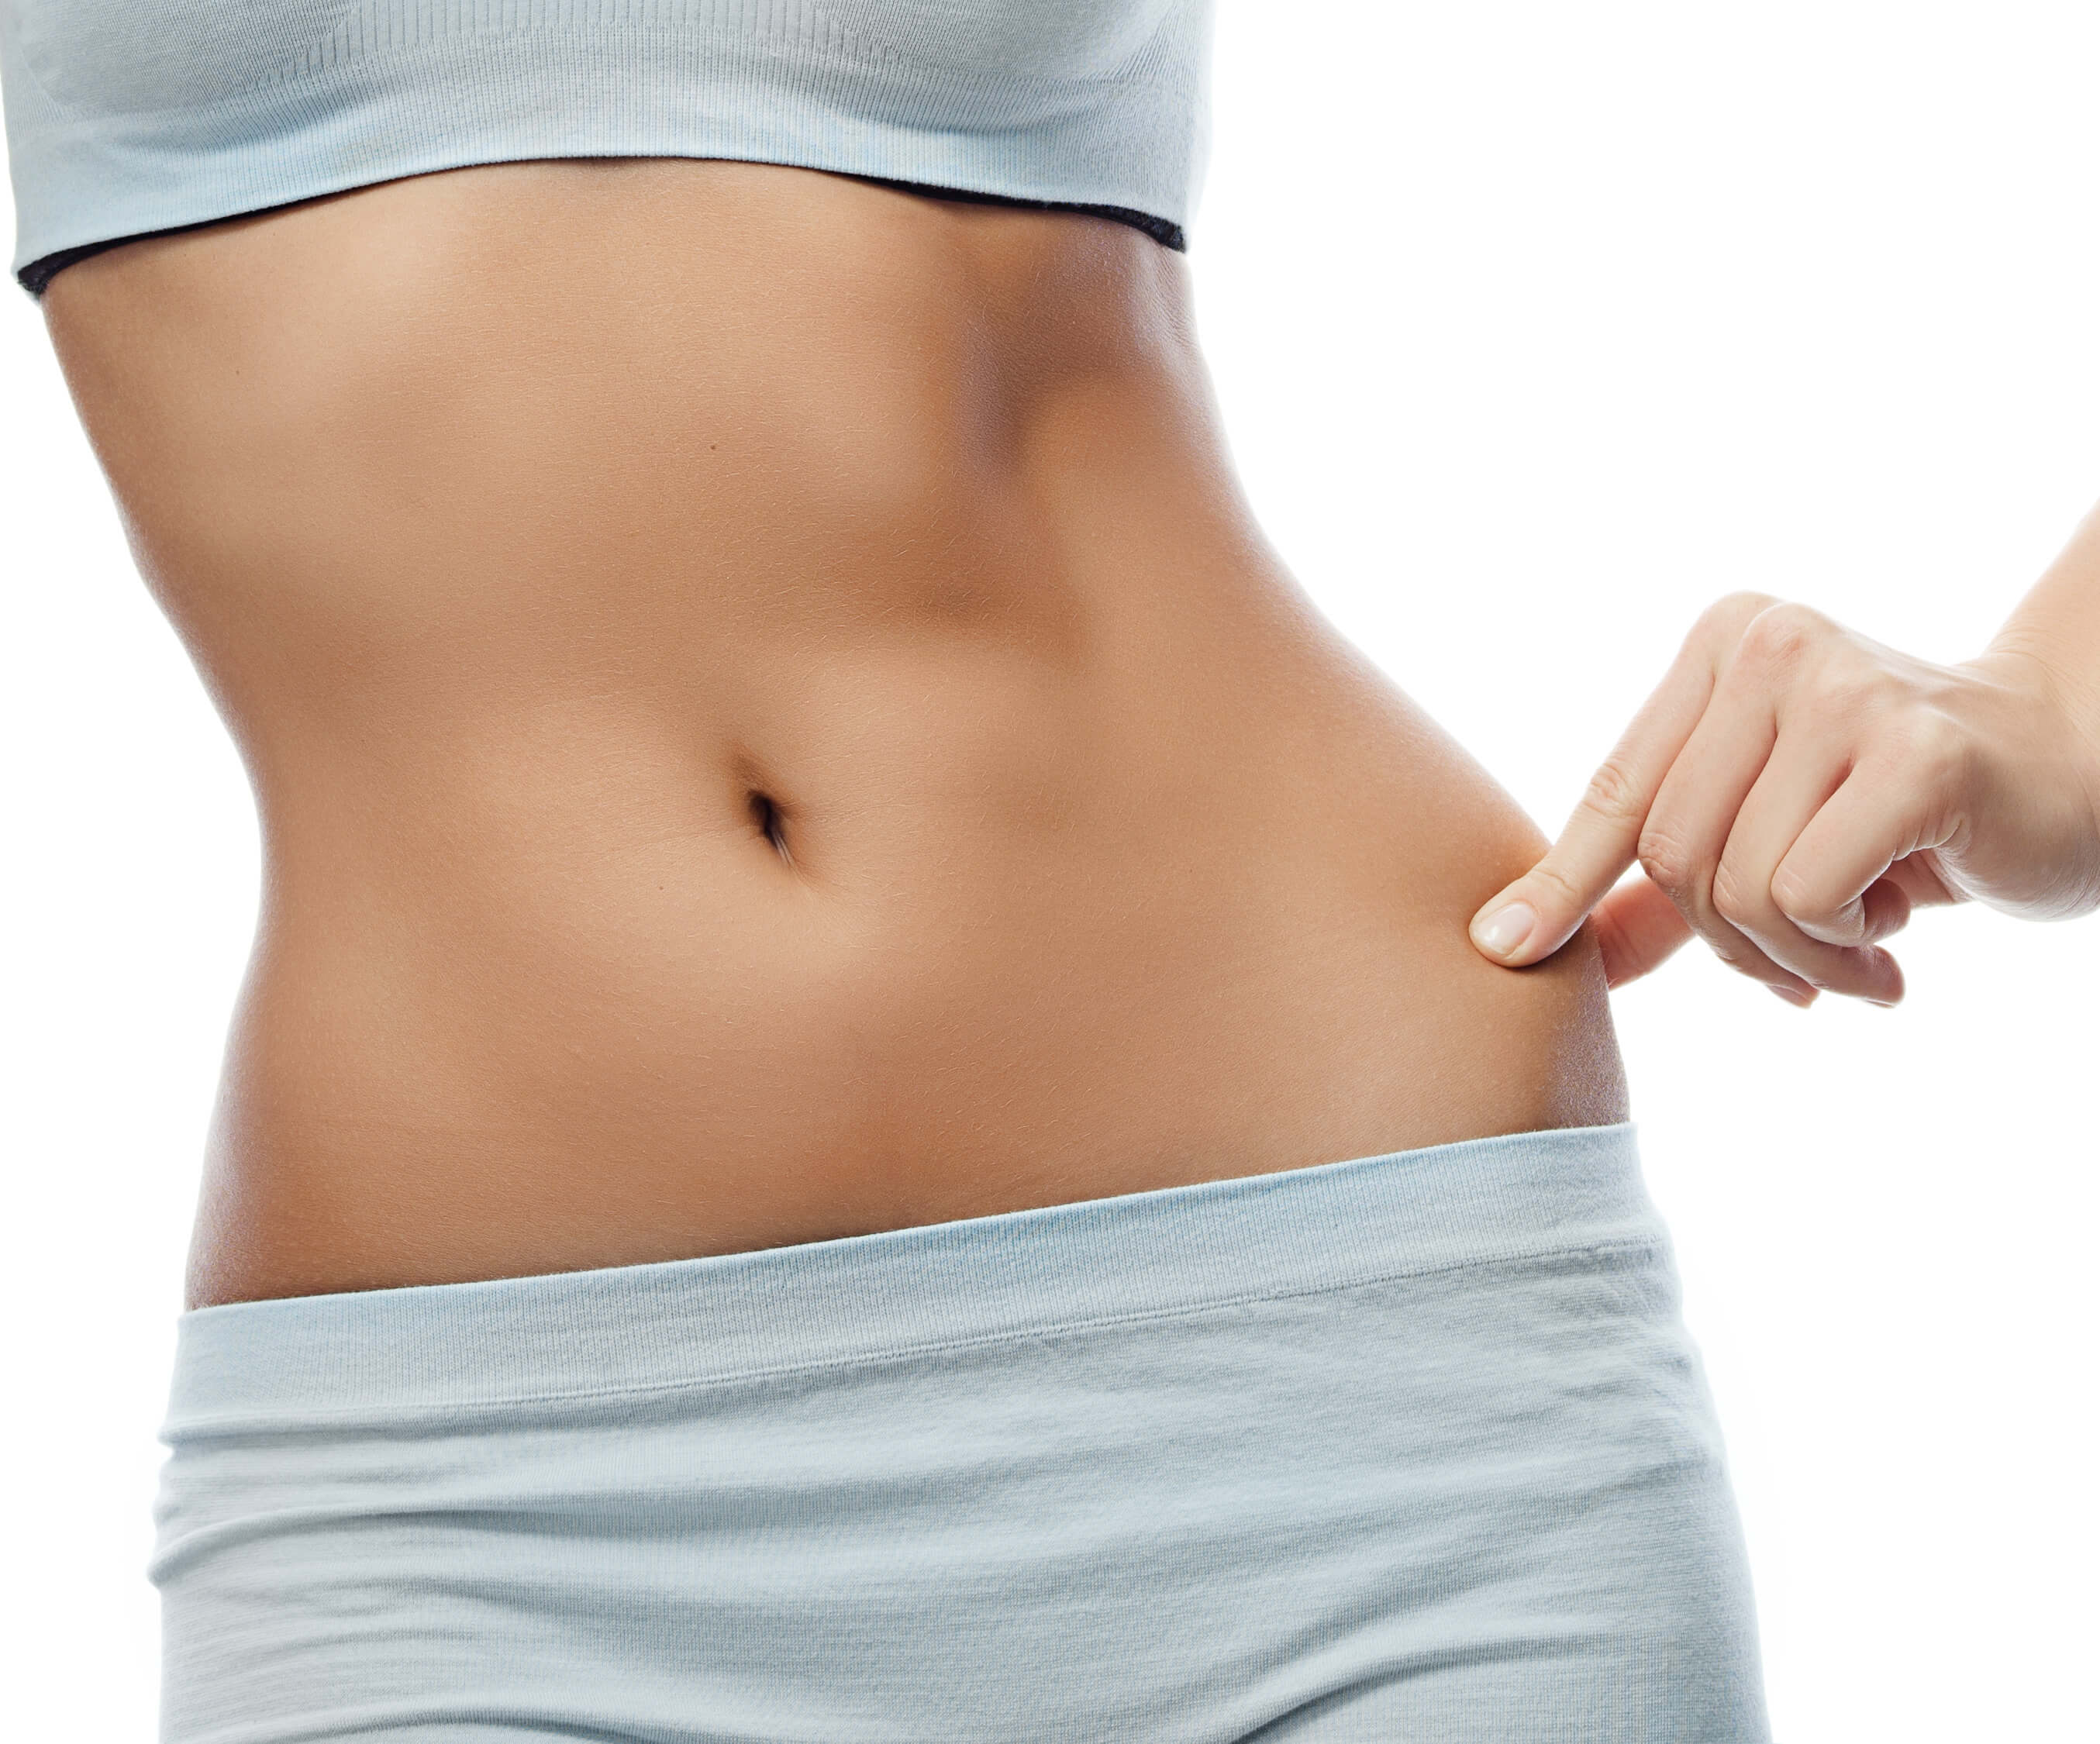 Plastic Surgeons Liposuction